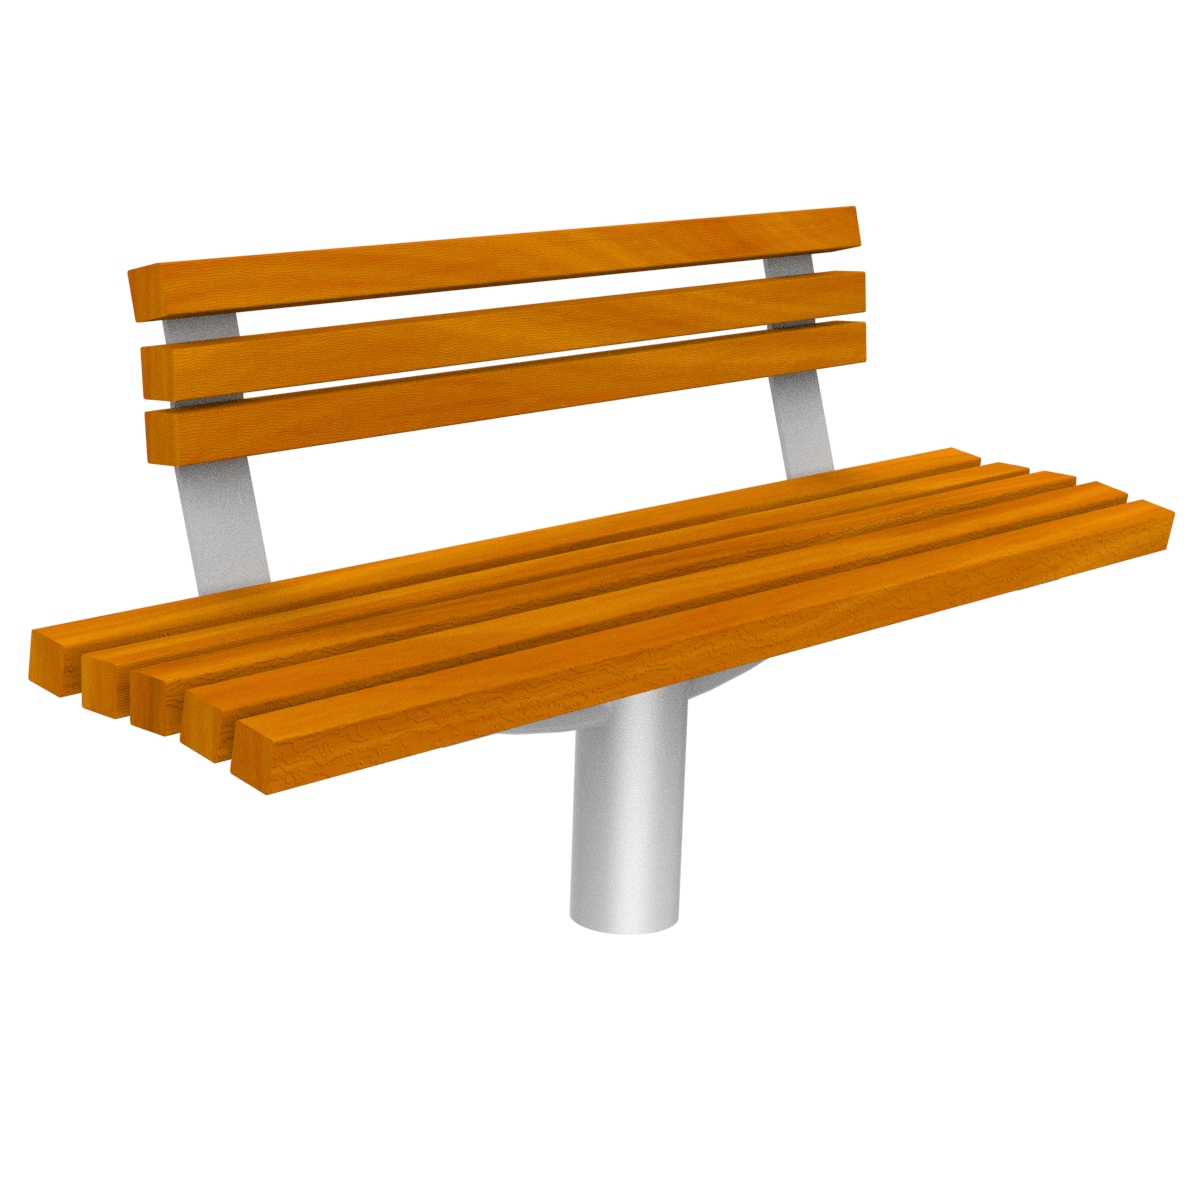 Diana Wood Bench urban furniture to sit down in parks and gardens